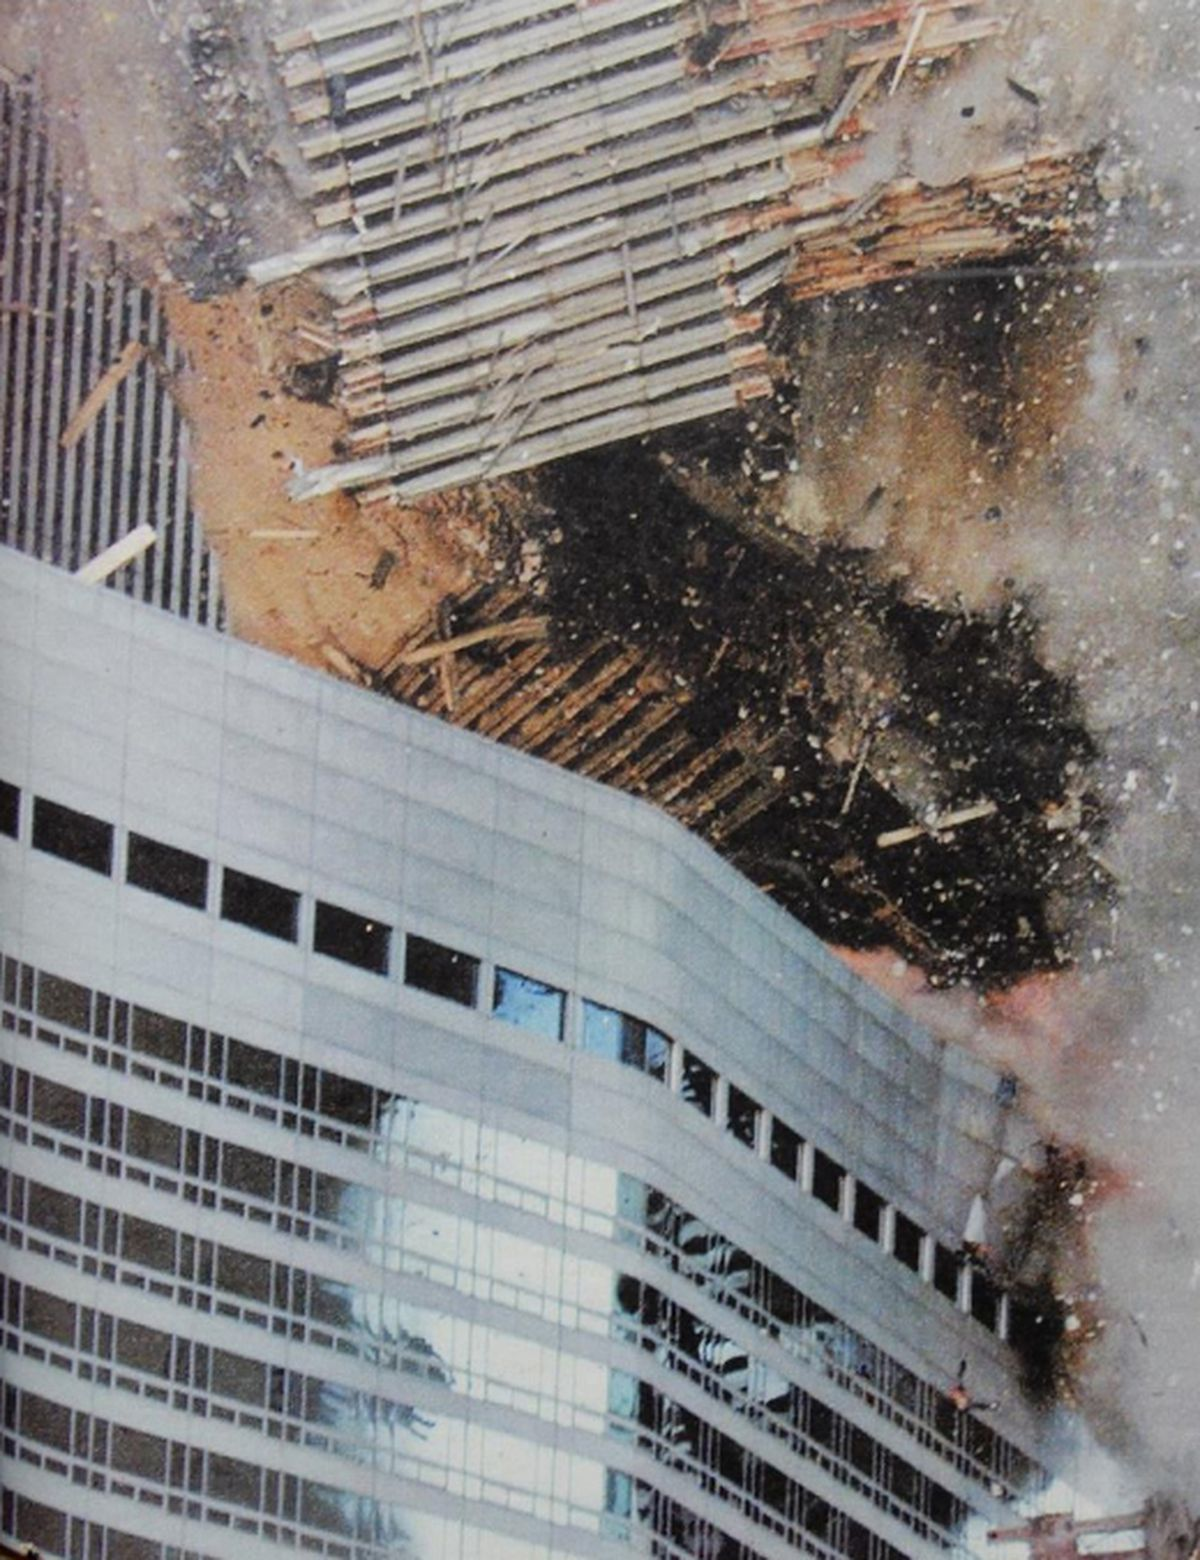 9.58am, September 11, 2001, and the South Tower collapses onto the Marriott Hotel – the top windows lit the rooftop swimming pool where Orleana Cattell had enjoyed one last swim before leaving New York not long beforehand.